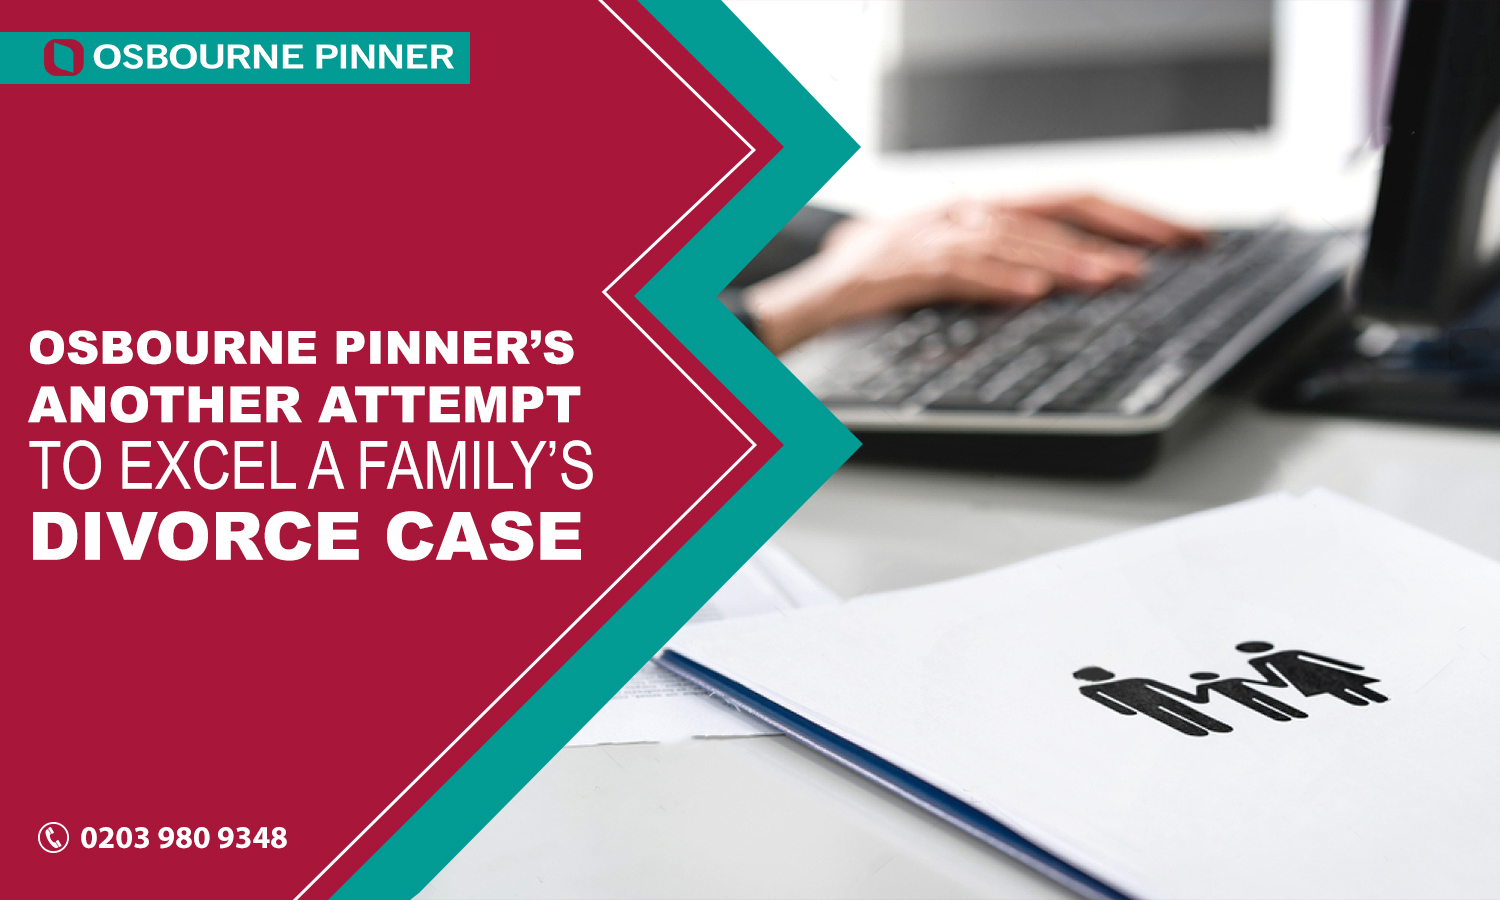 Osbourne Pinner's Another Attempt to Excel a Family's Divorce Case